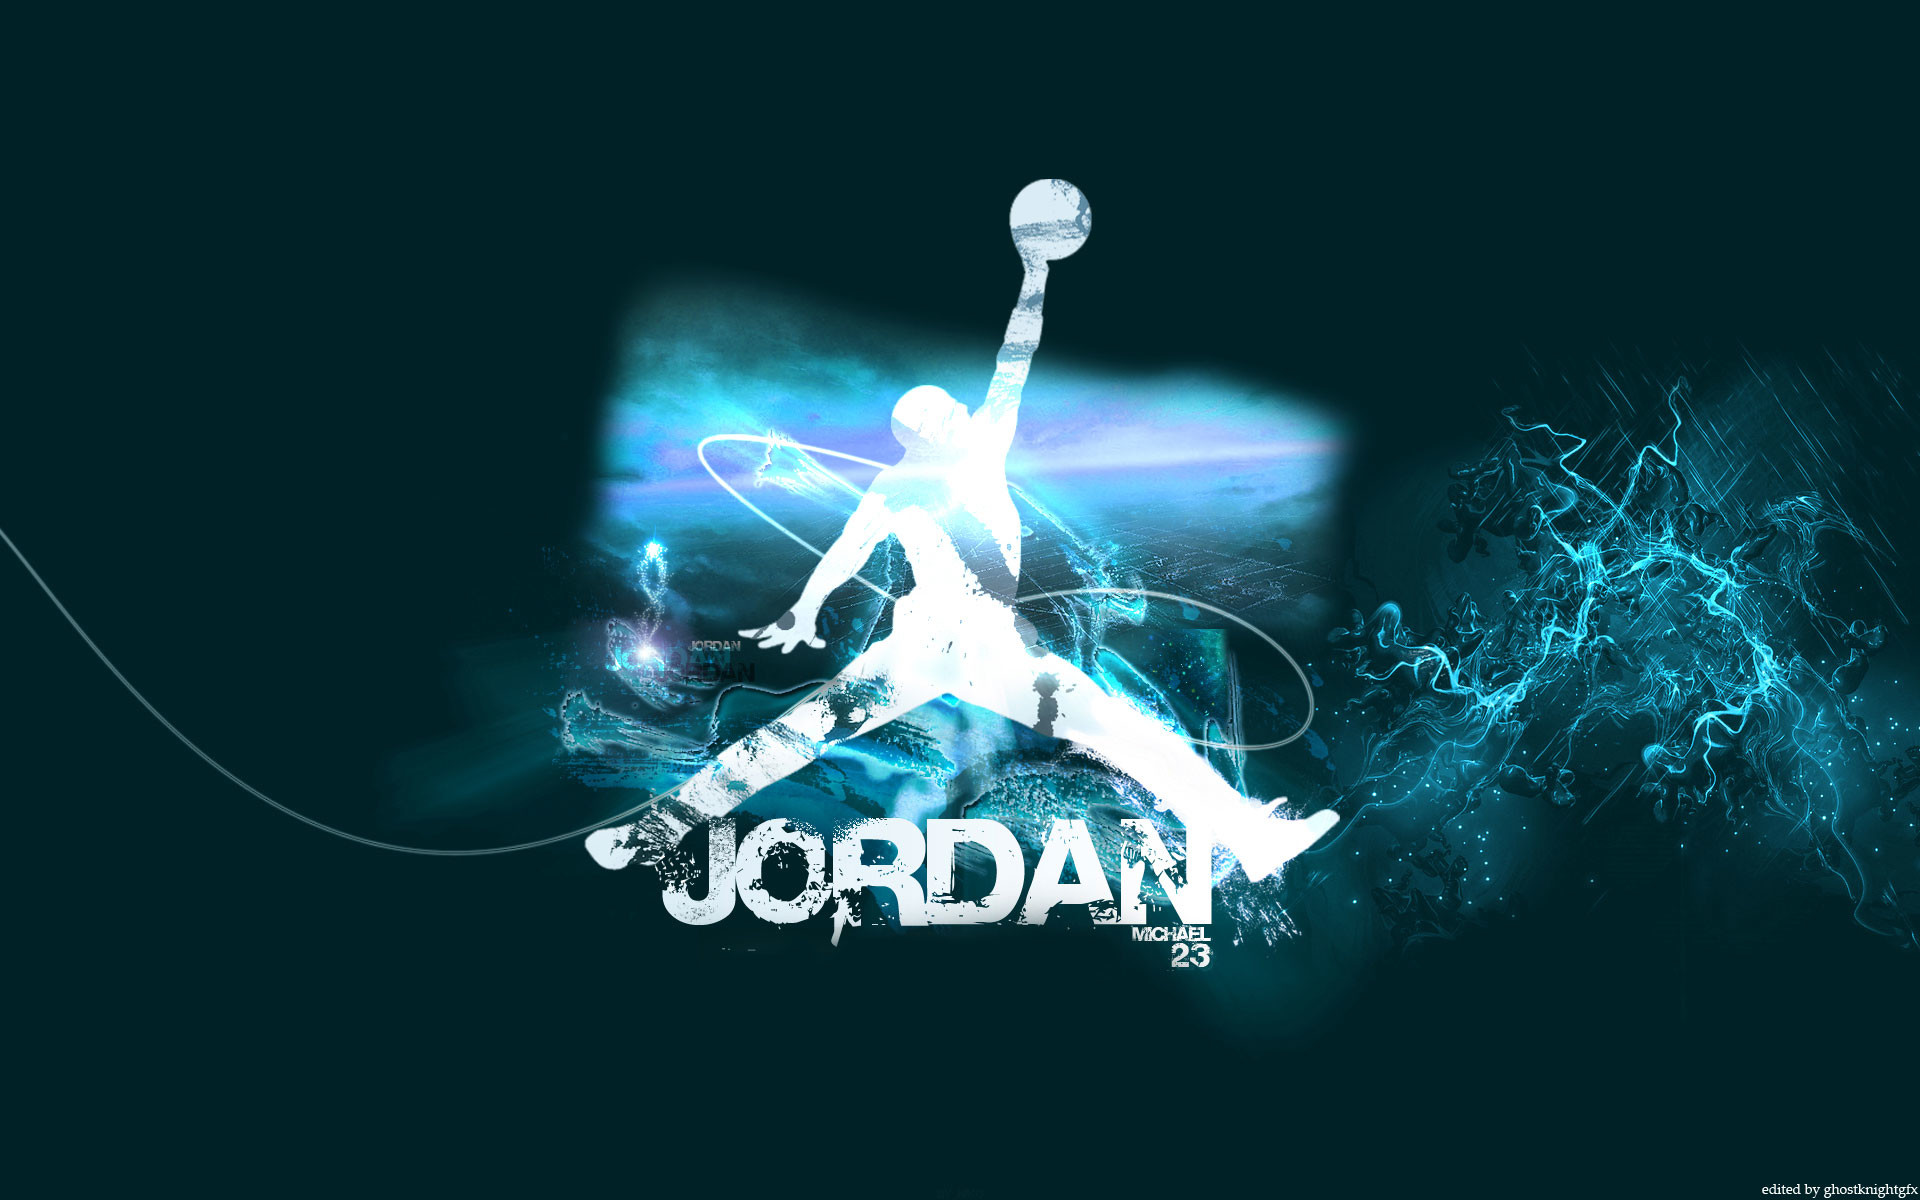 michael jordan background1 hd free amazing cool tablet smart phone 4k high  definition 1920×1200. miami dolphins wallpaper wide free logo background …